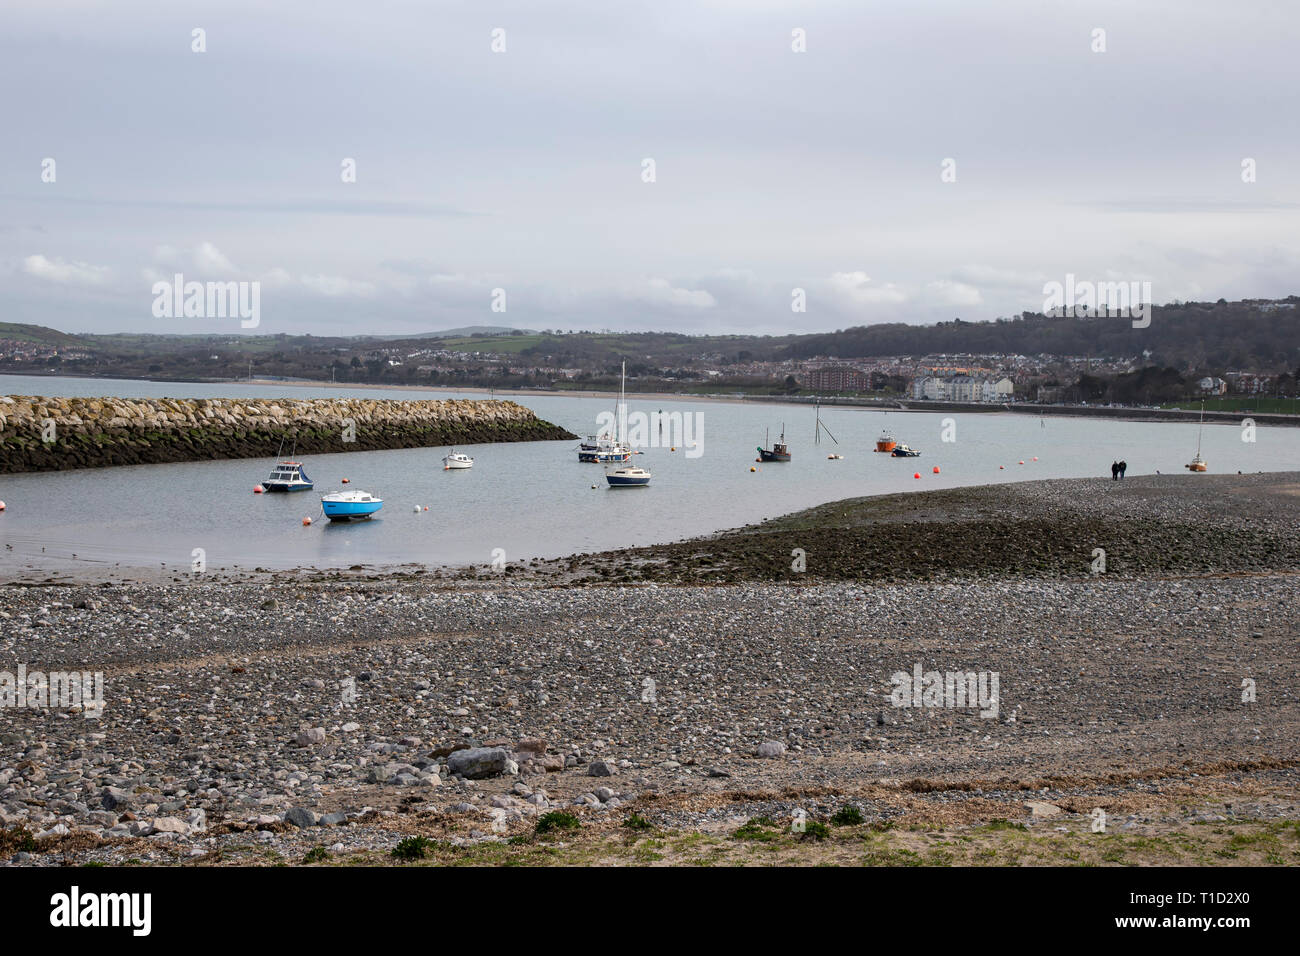 Boats and yachts at anchor in the small harbour inlet at Rhos on Sea, North Wales Stock Photo